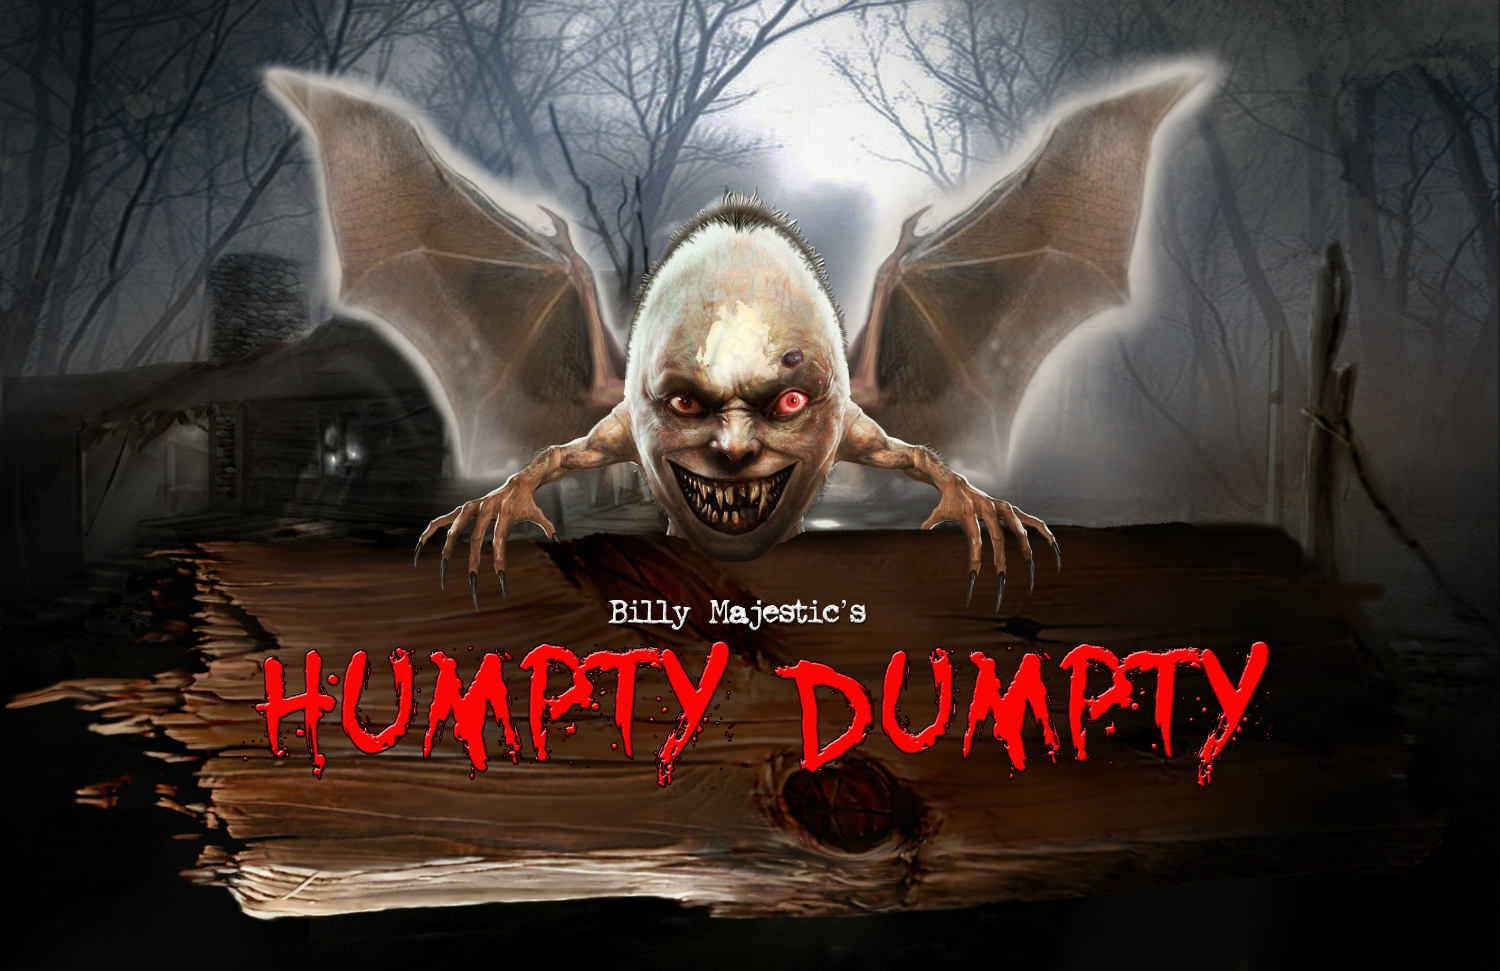 Billy Majestic's Humpty Dumpty